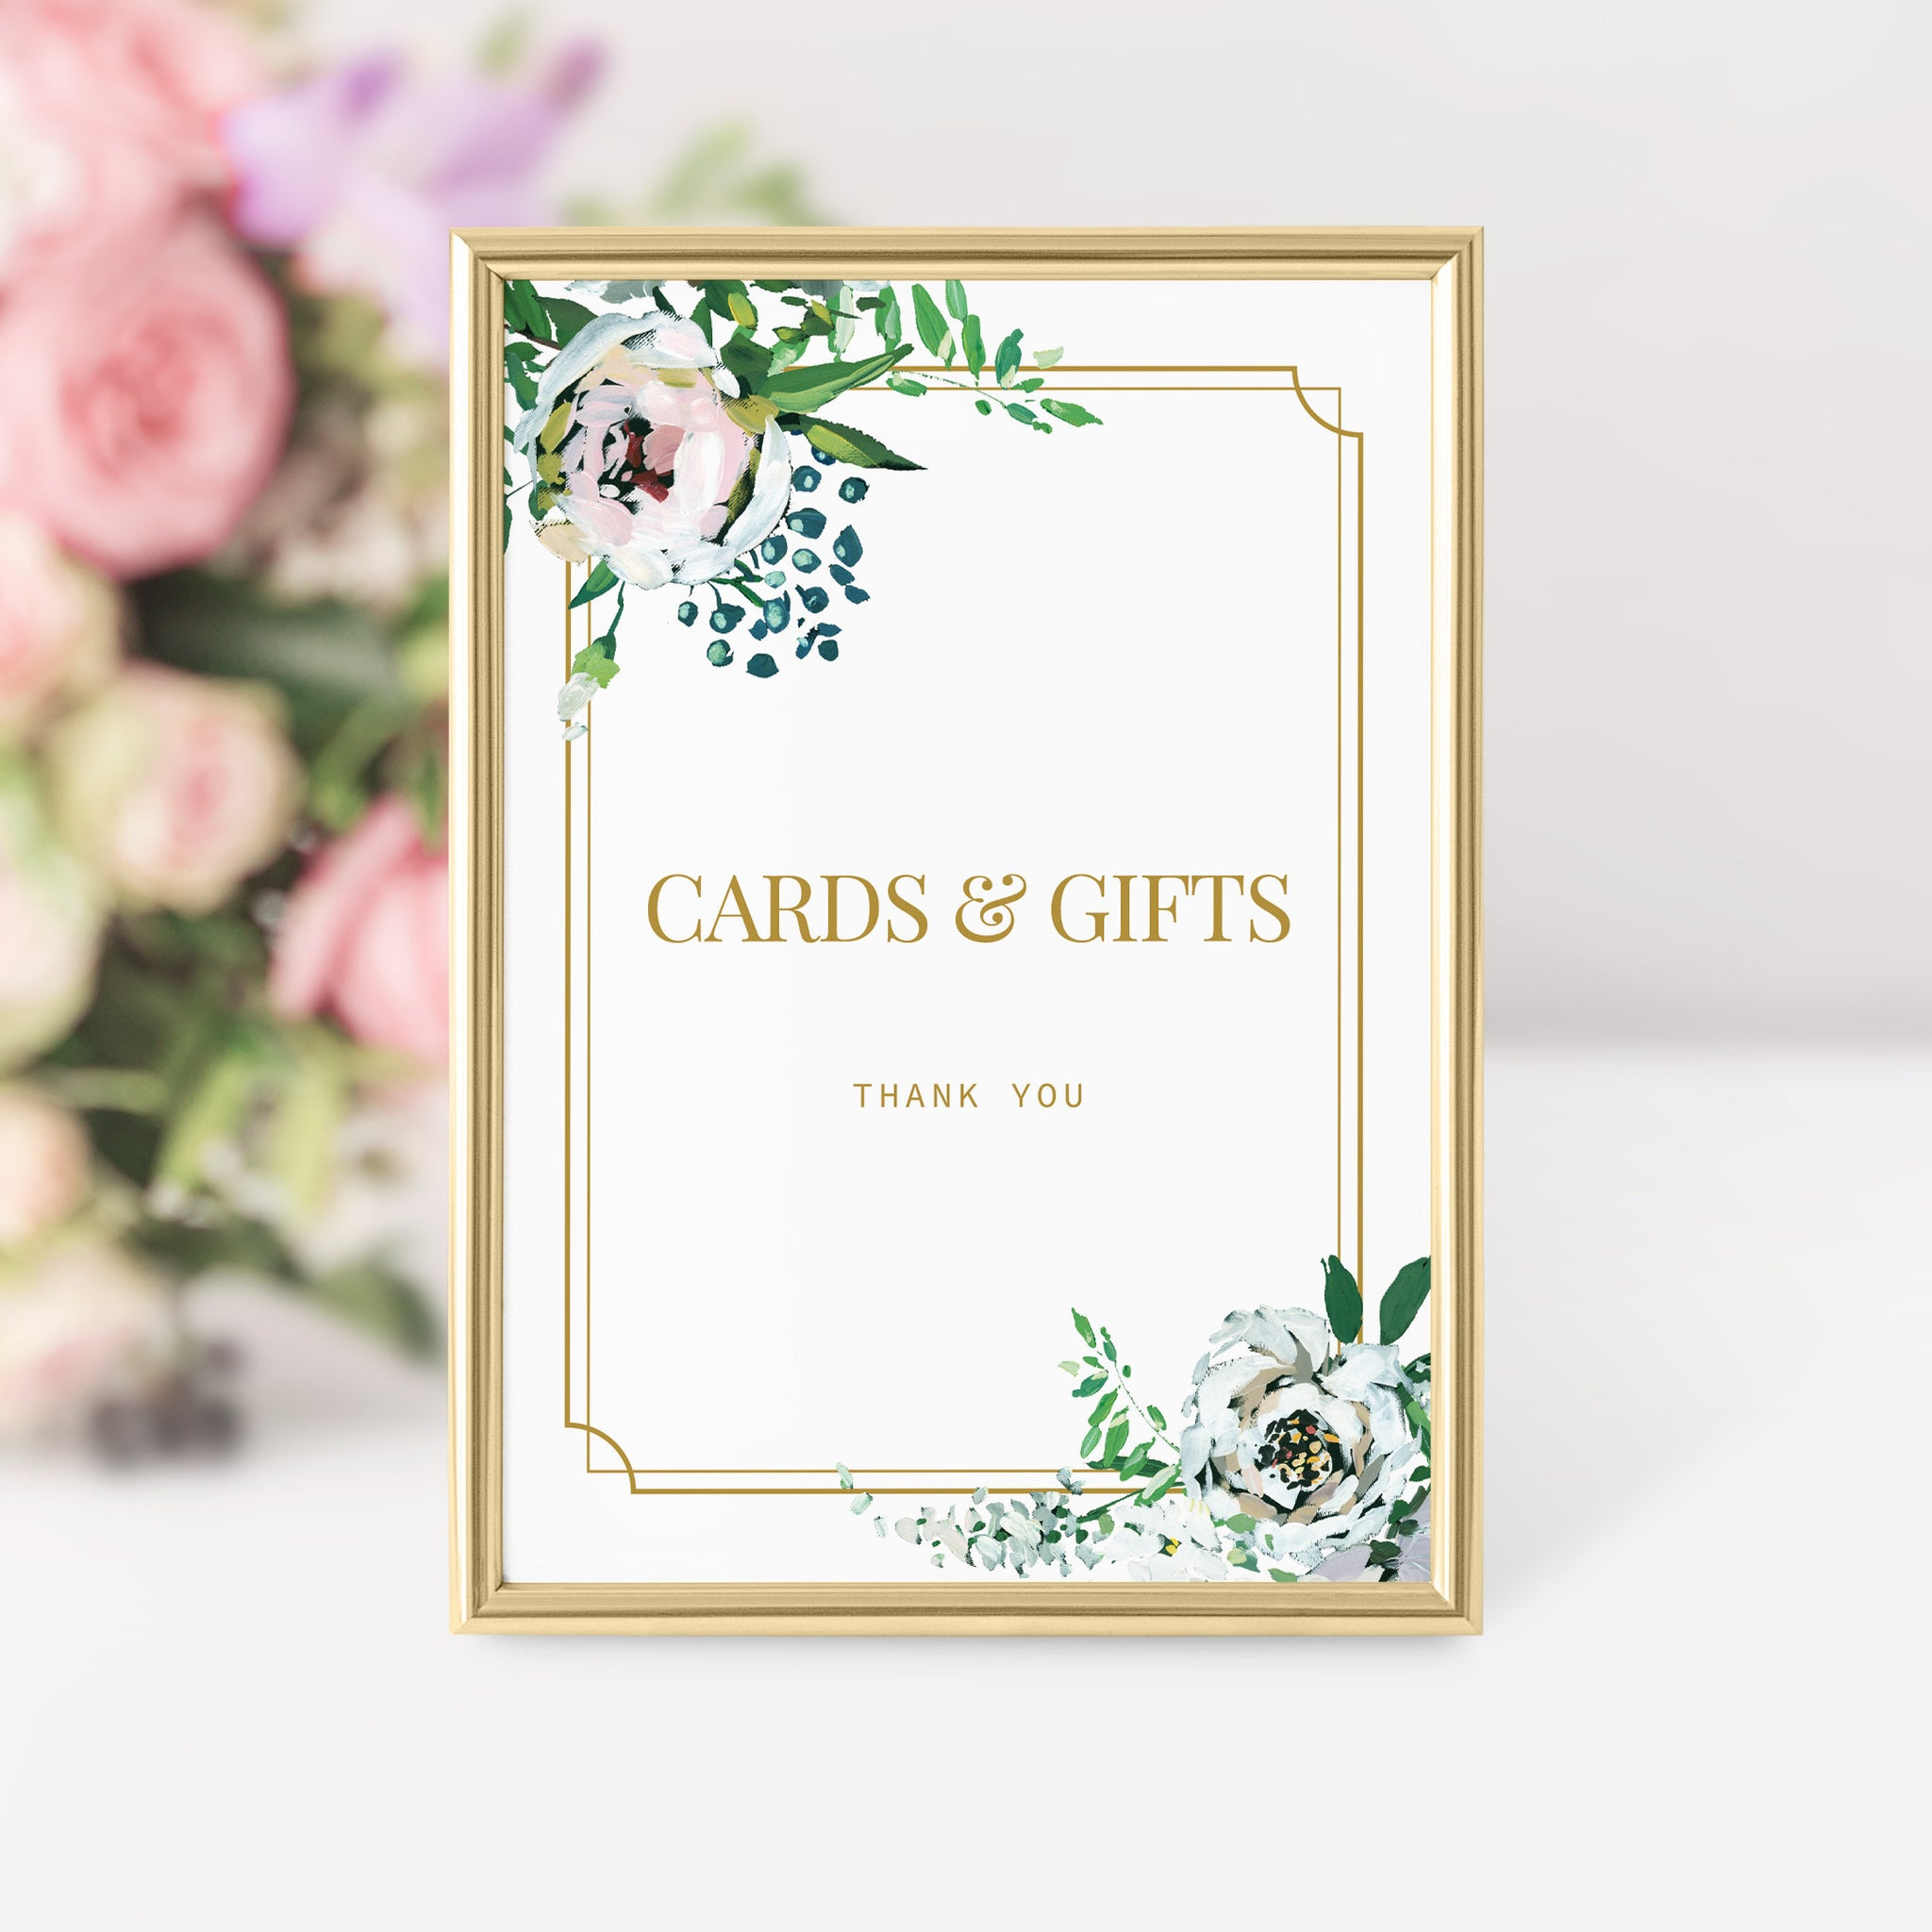 Blush Floral Greenery Cards and Gifts Sign Printable INSTANT DOWNLOAD, Gold Bridal Shower Gifts Sign, Wedding Decoration Supplies - BGF100